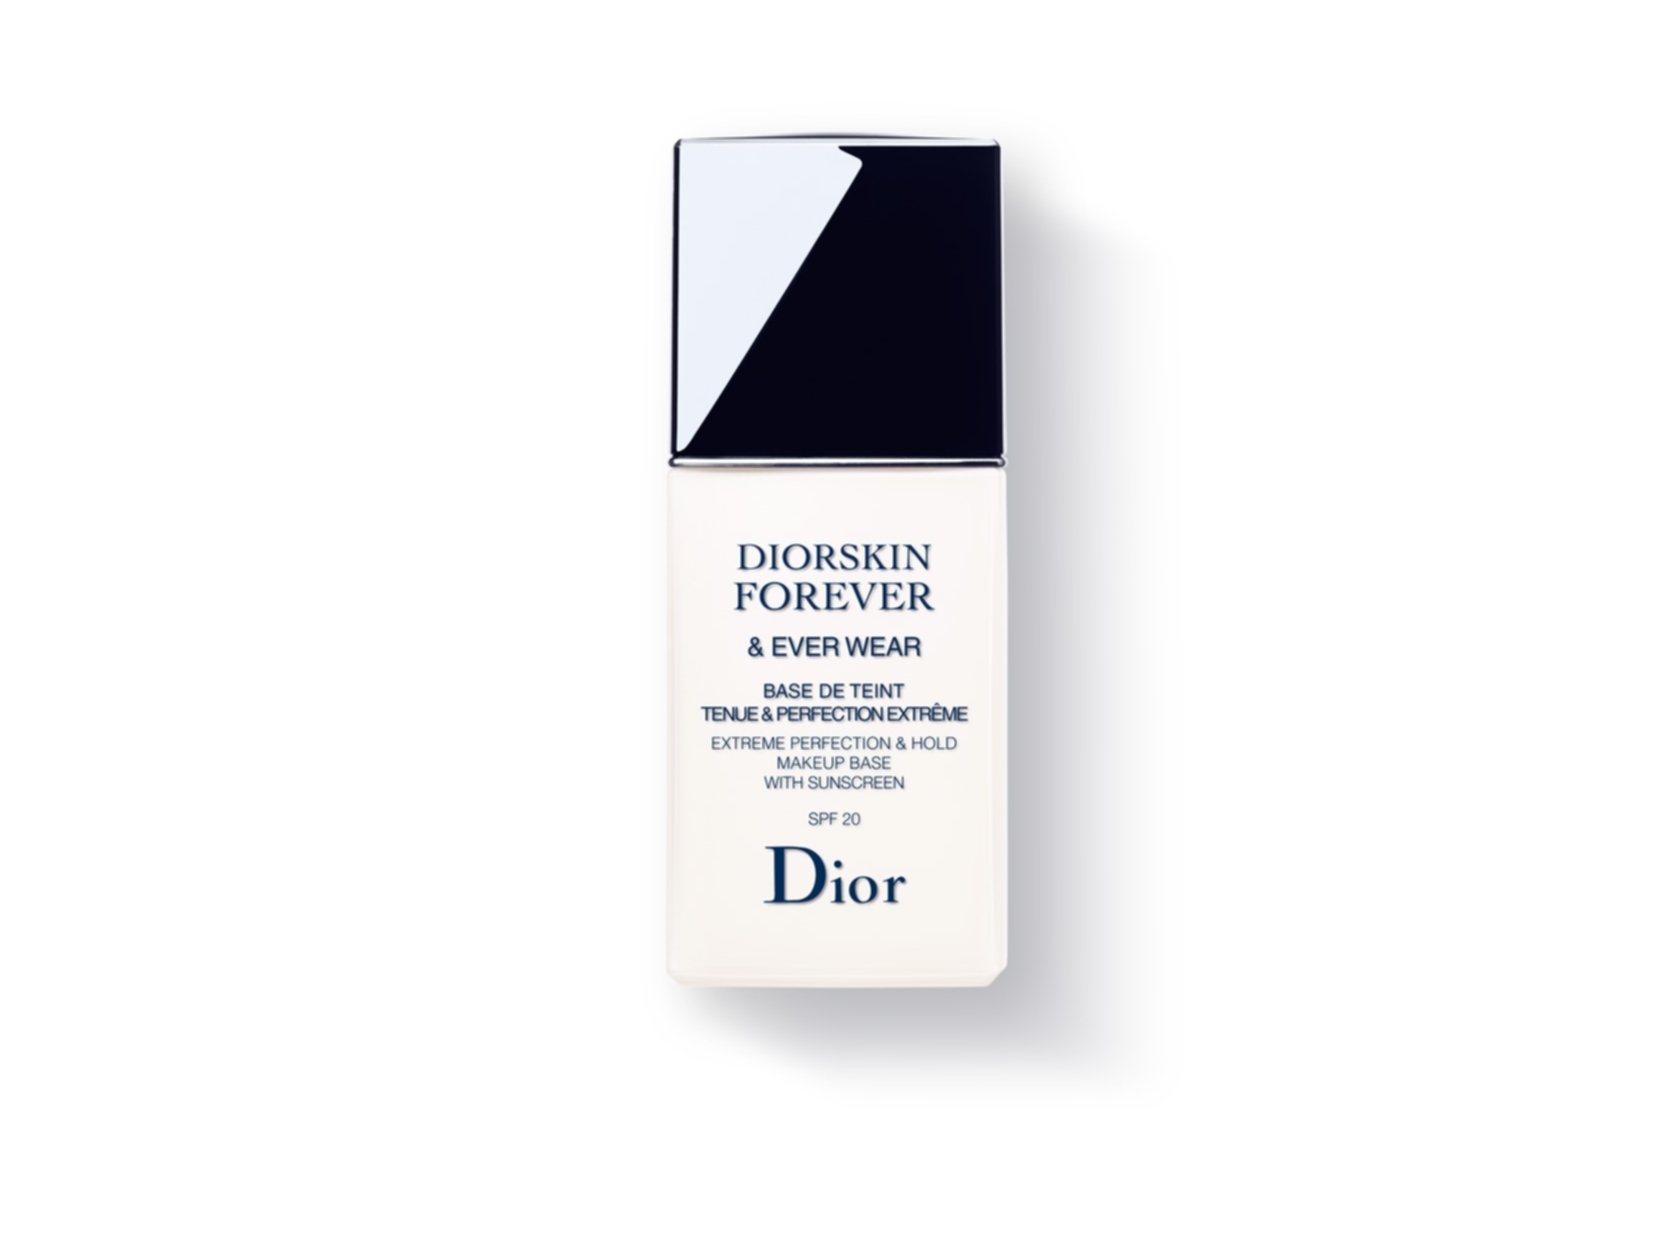 Dior, Diorskin Forever & Ever Wear